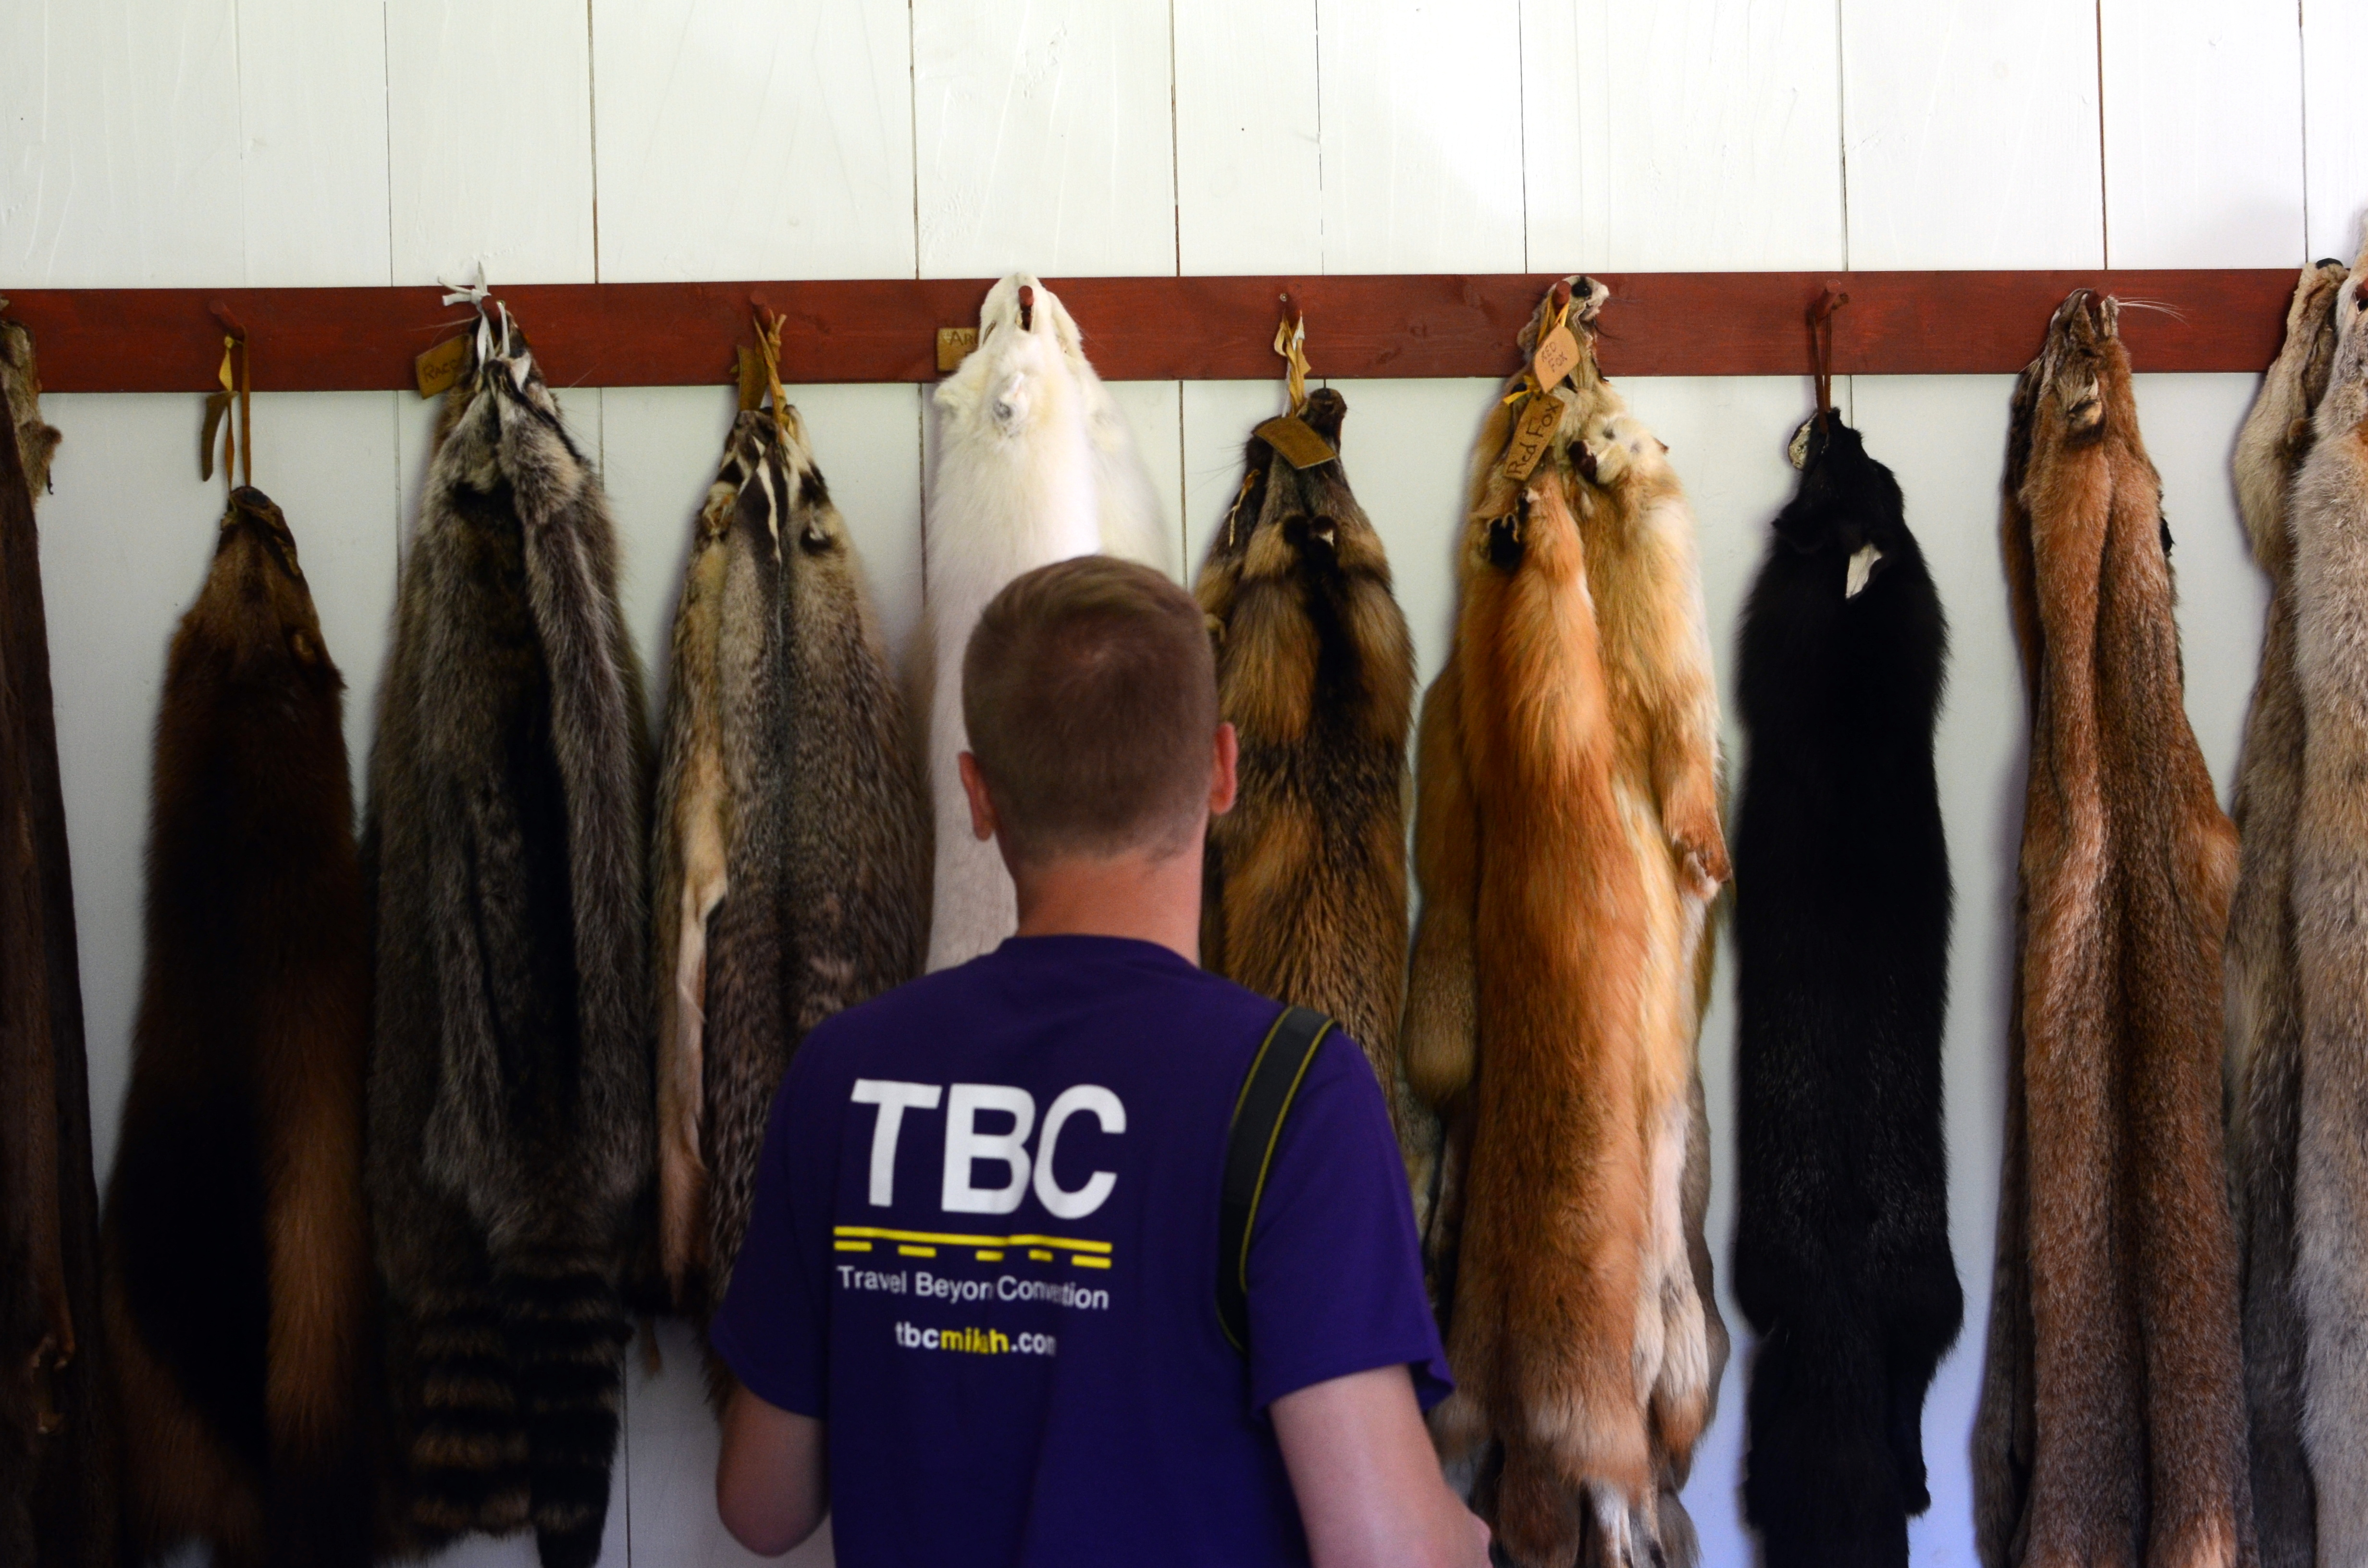 Mikah Meyer checks out a variety of animal pelts at the Grand Portage National Monument in Minnesota. They are (from left) wolverine, raccoon, badger, arctic fox, cross fox, red fox, silver fox, bobcat and coyote.